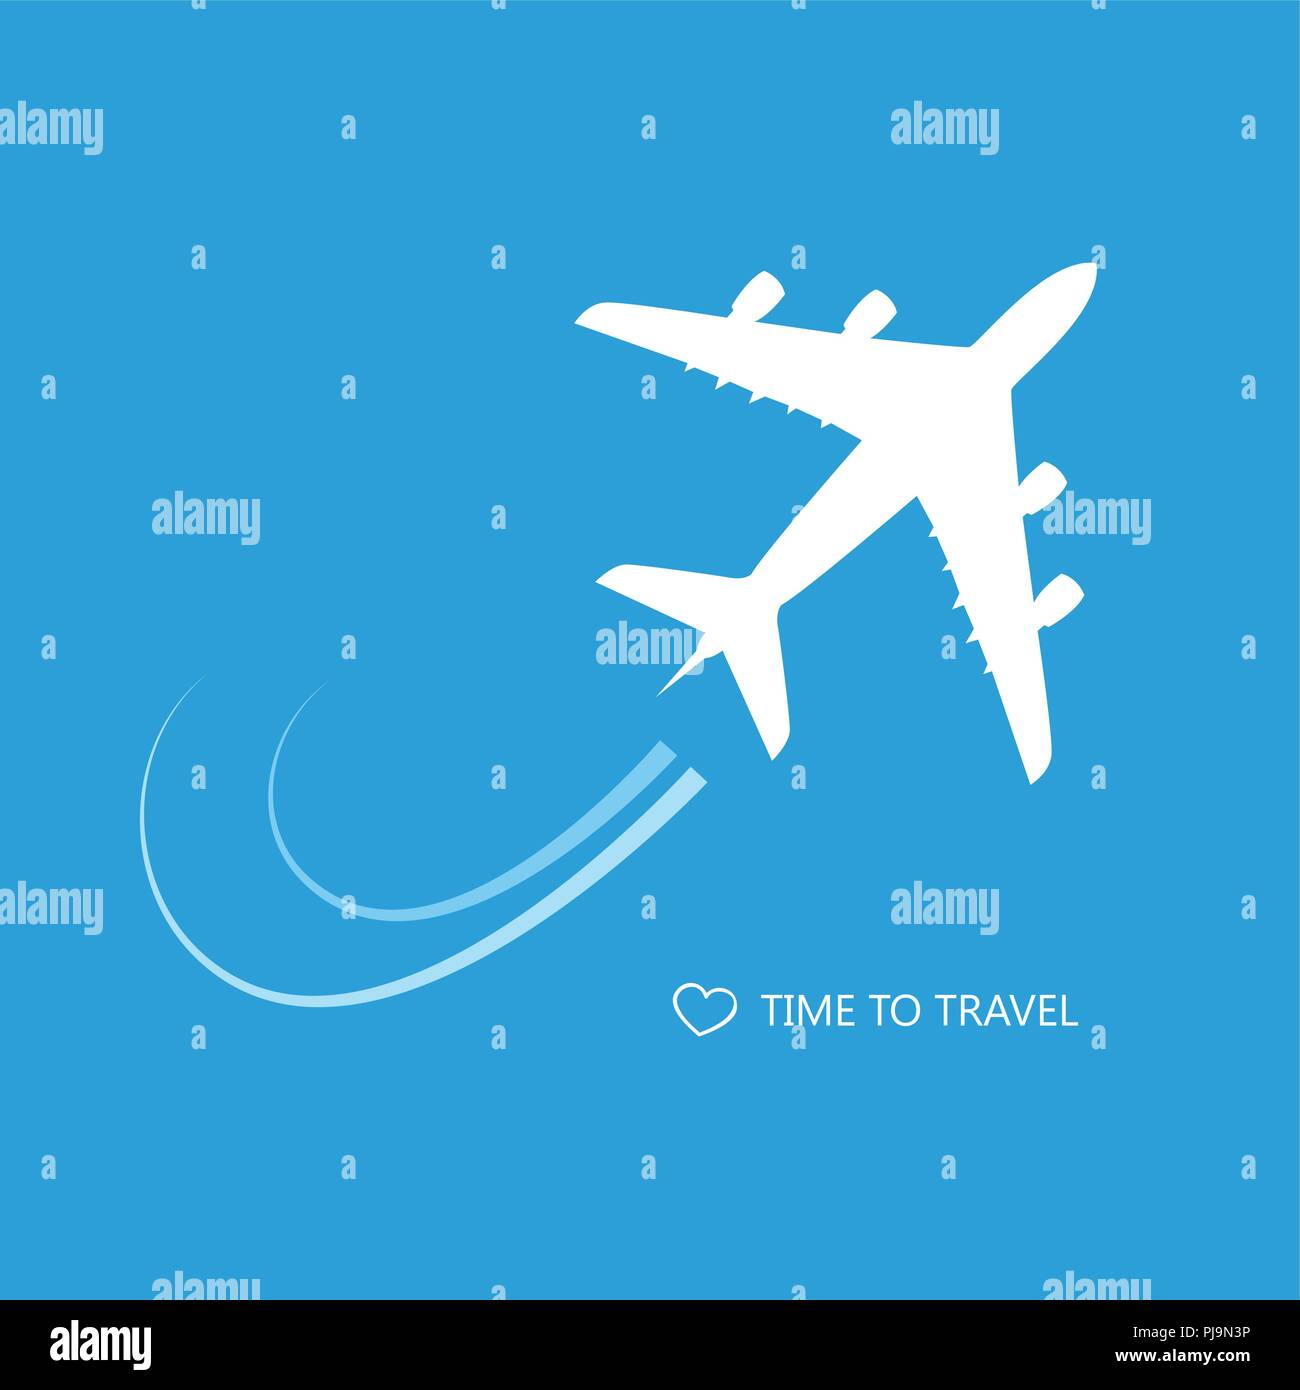 passenger airplane time to travel blue background vector illustration EPS10 - Stock Vector